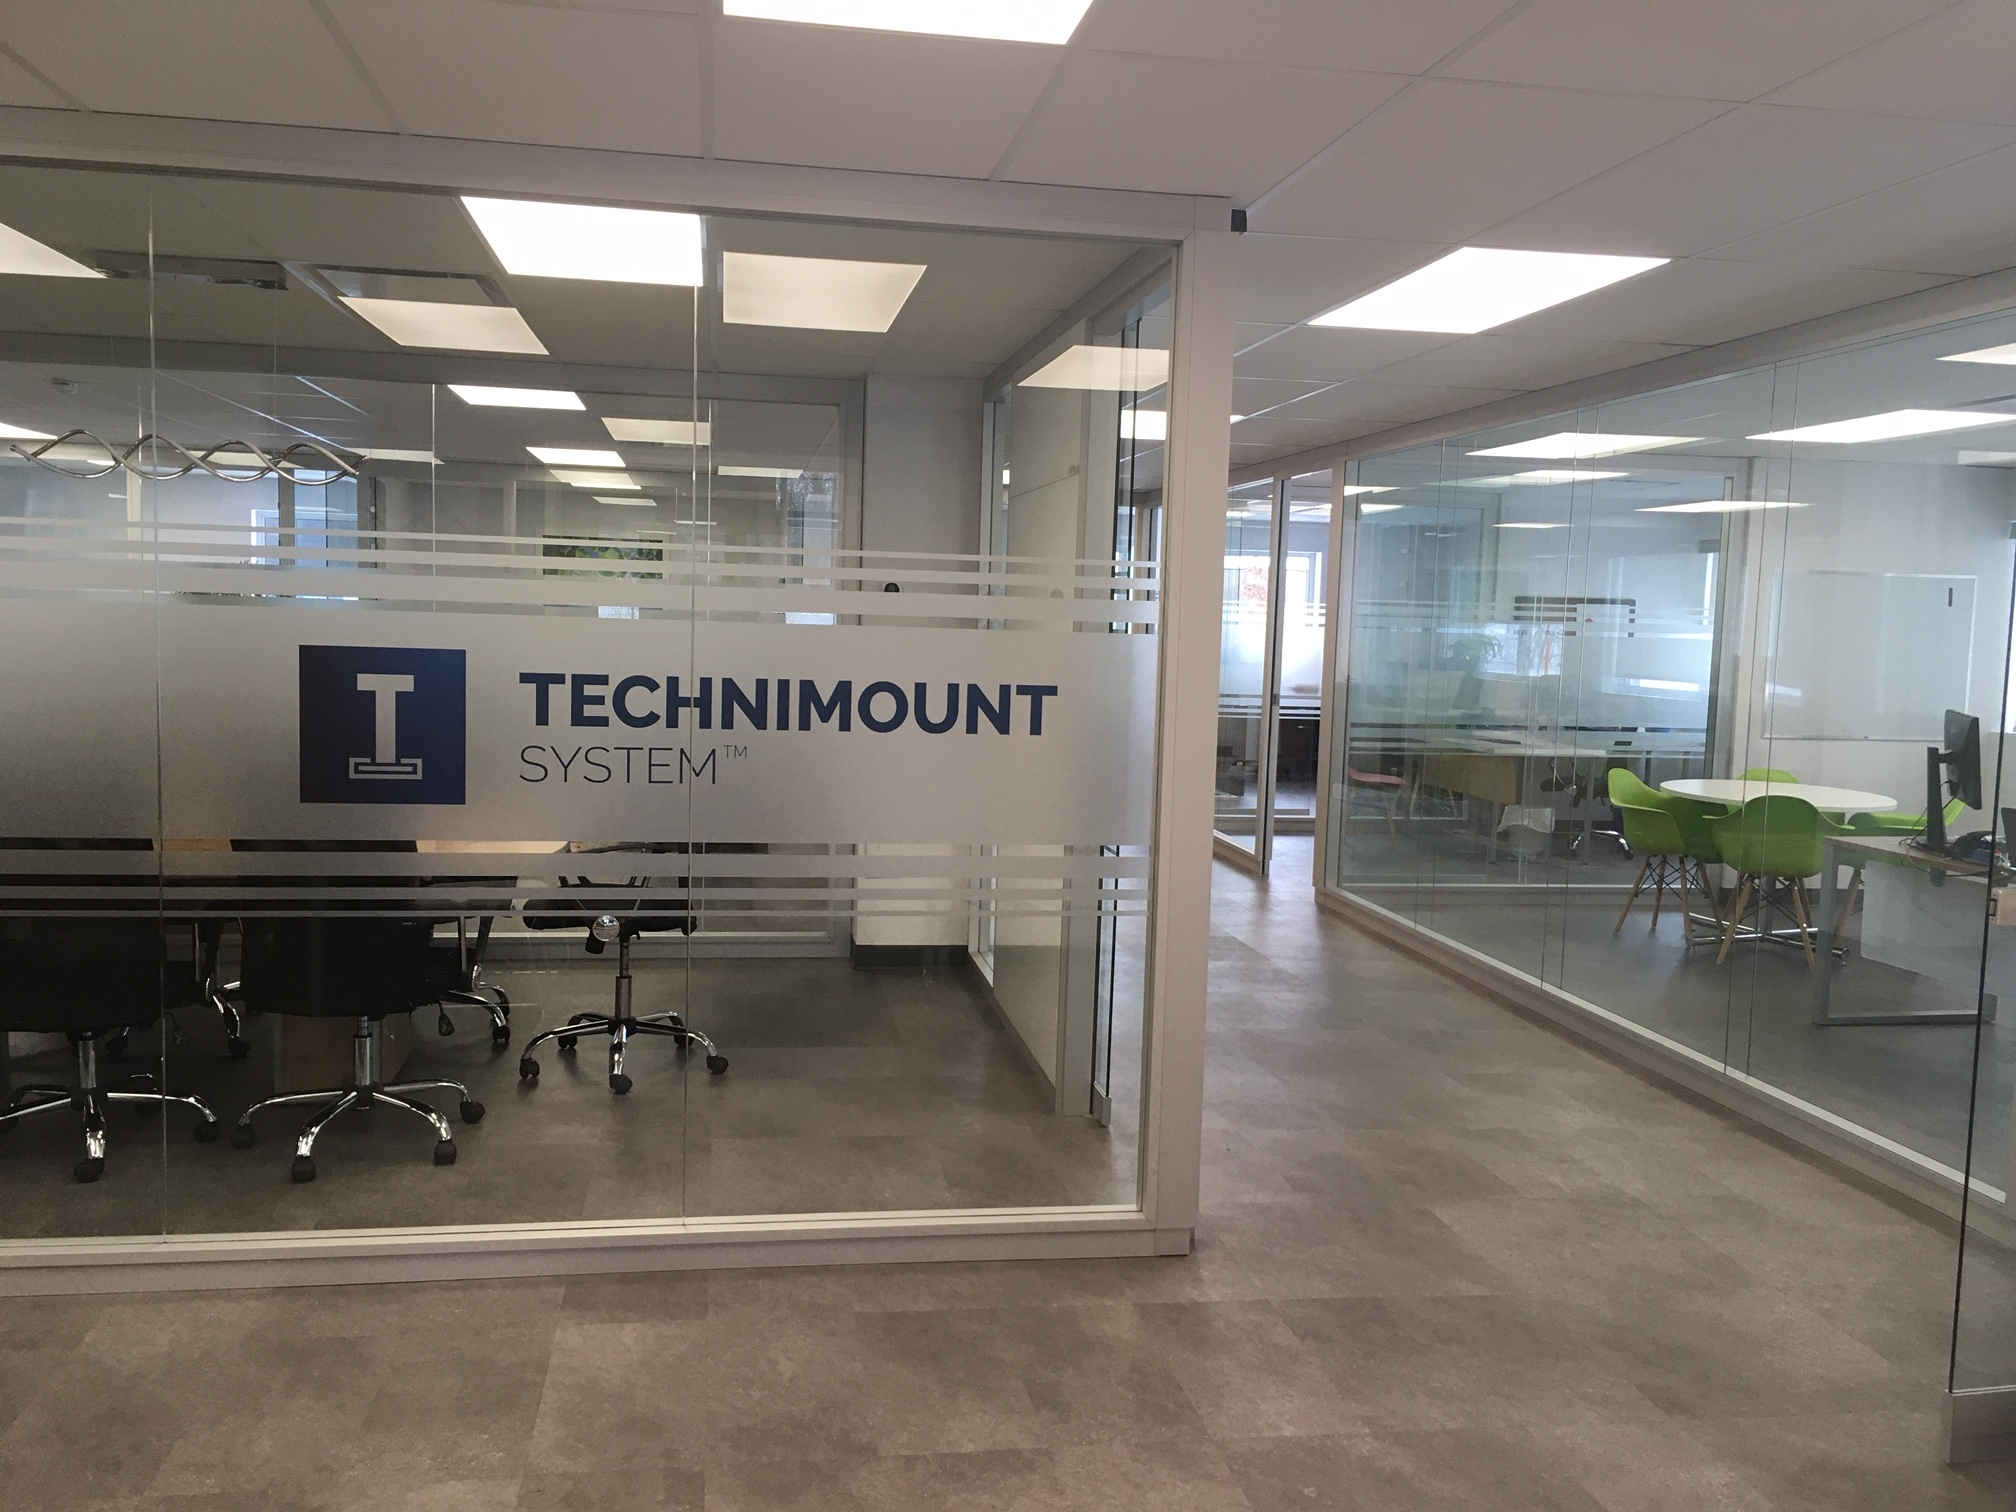 Technimount office